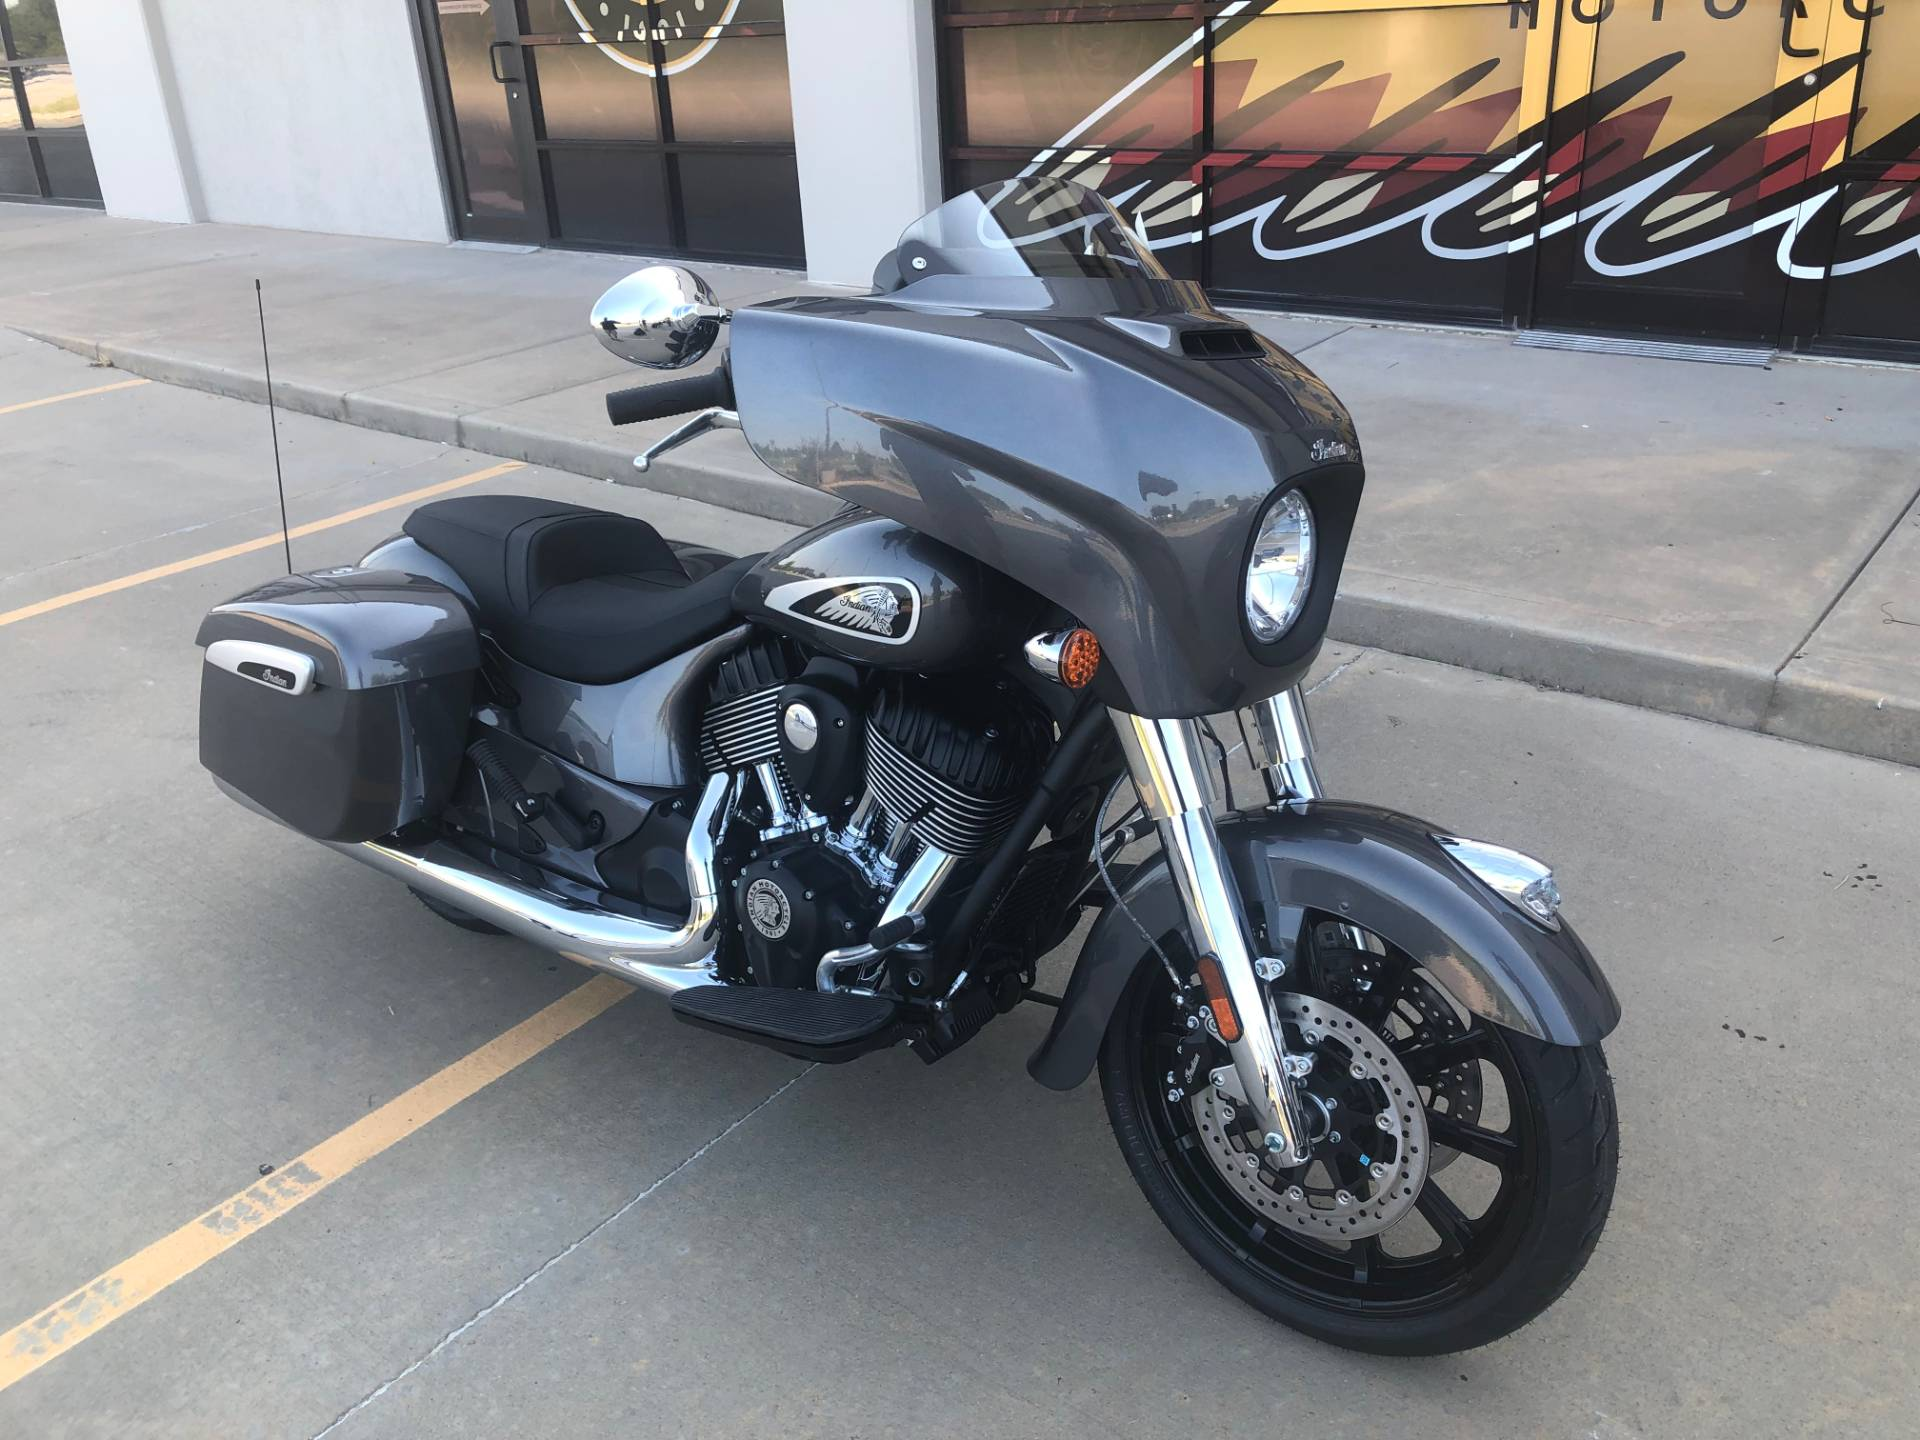 2019 Indian Chieftain® ABS in Norman, Oklahoma - Photo 2